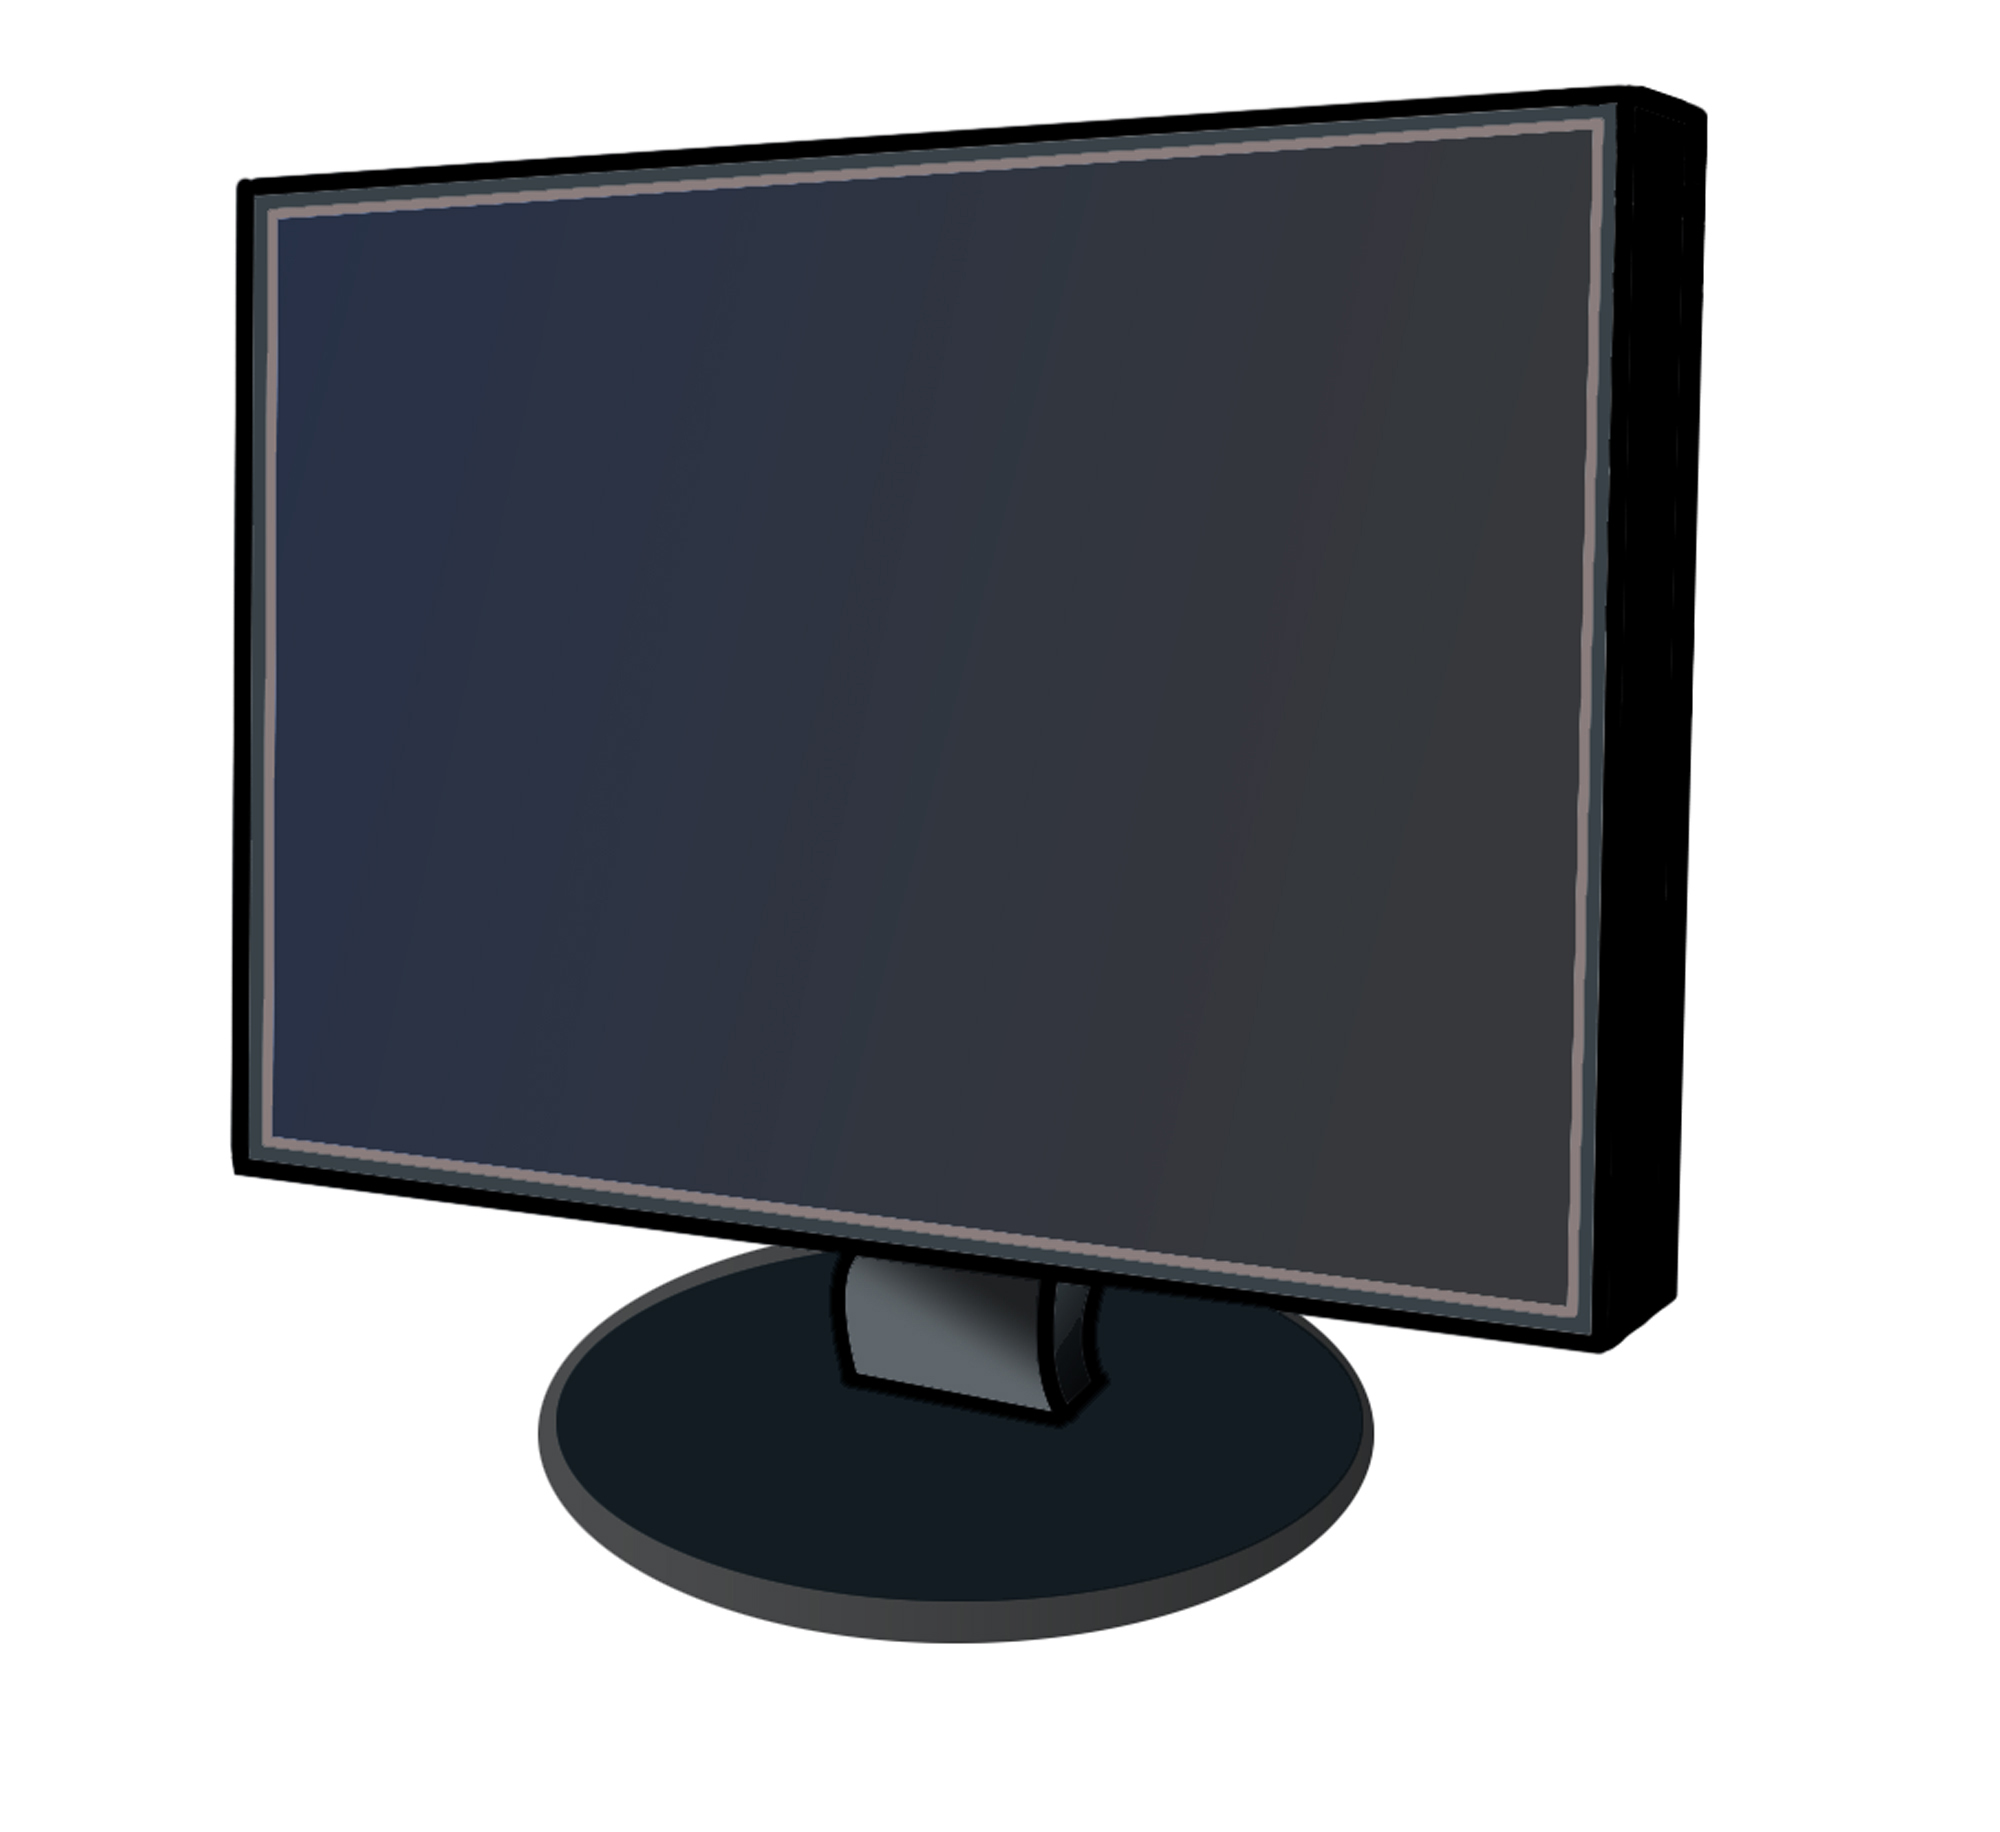 2000x1832 Image Of Computer Monitor Clipart